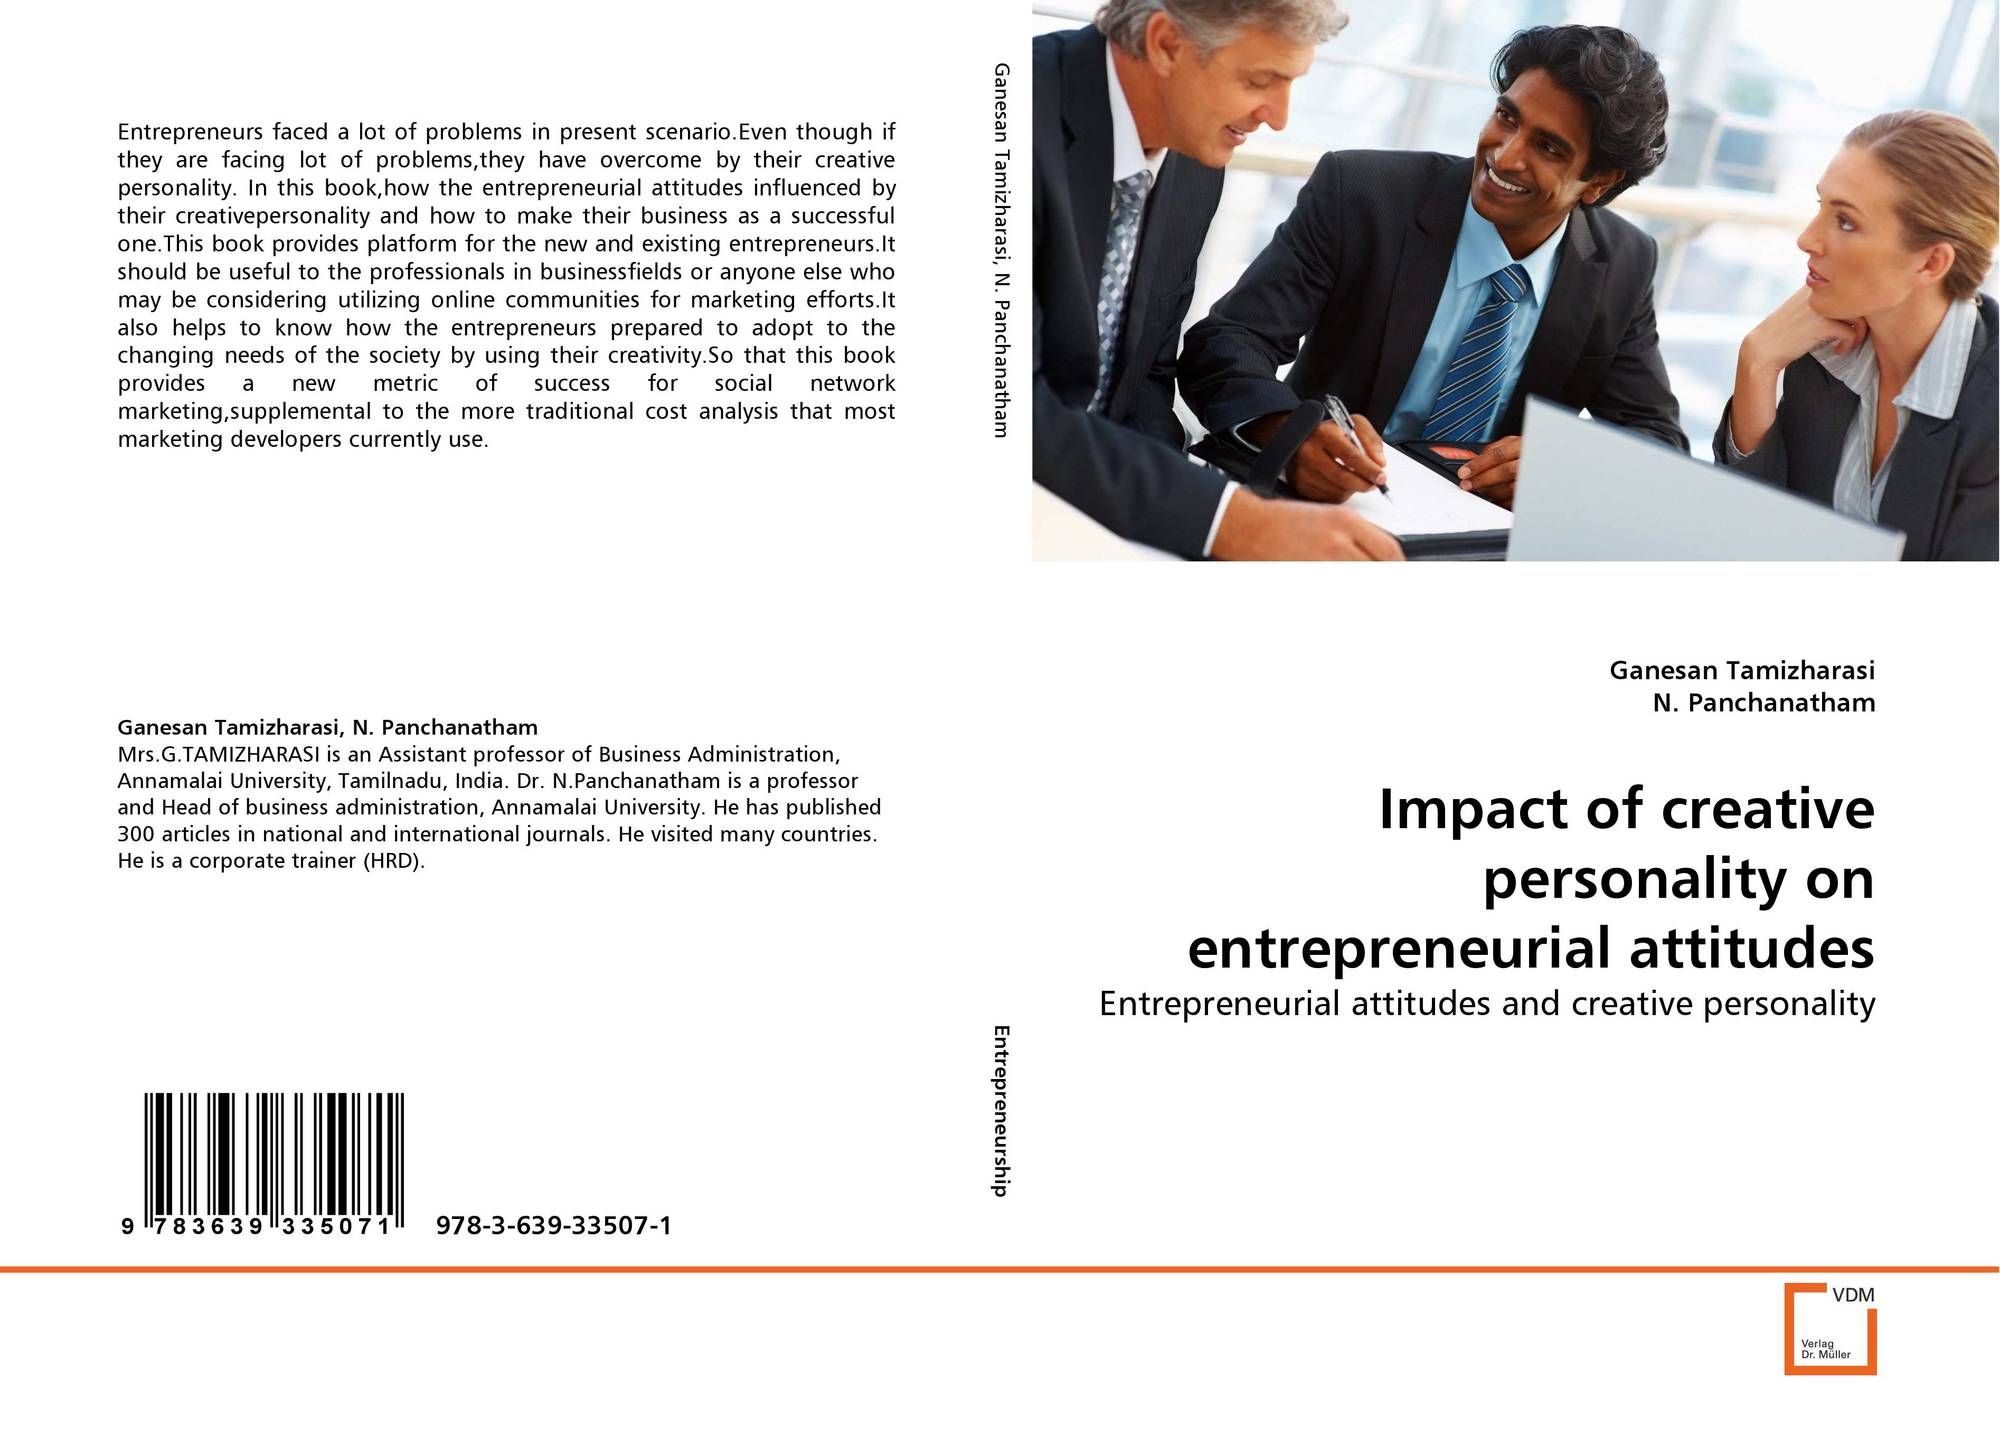 entrepreneurs personal characteristics and influence on business What entrepreneurship skills are required to develop a growth-orientated business and how these skills might be enhanced barriers to growth.